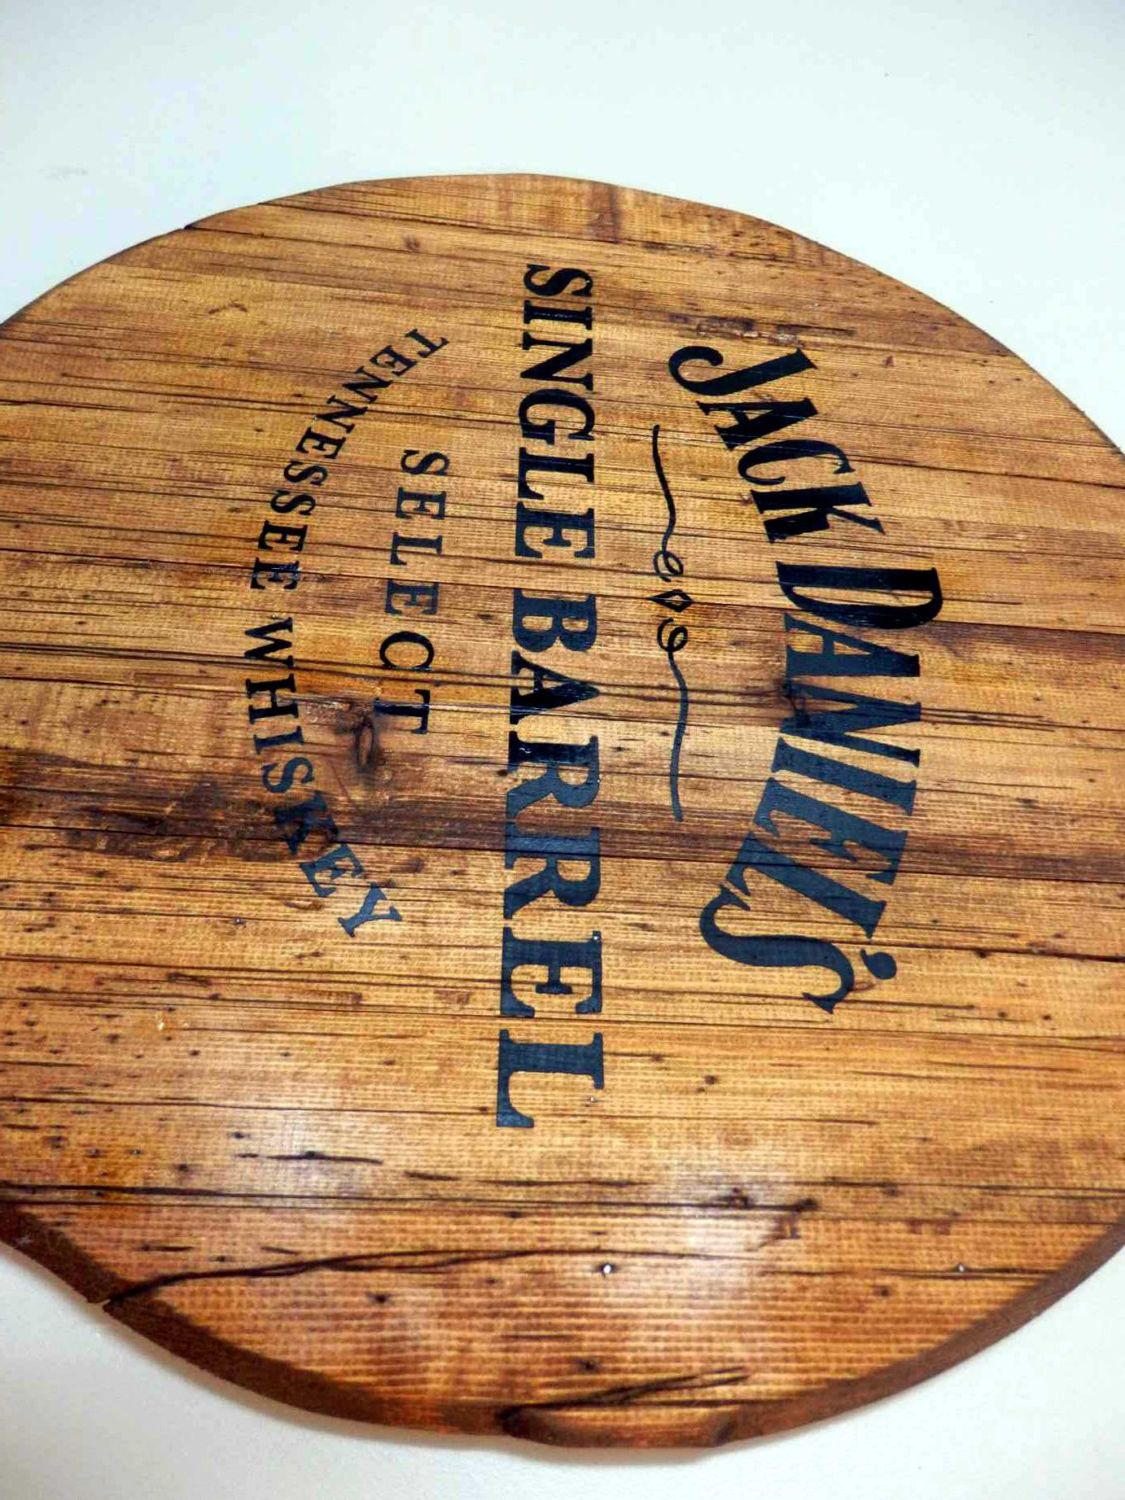 Personalized Nfl Man Cave Signs : Jack daniels wooden barrel top personalized & handmade vintage